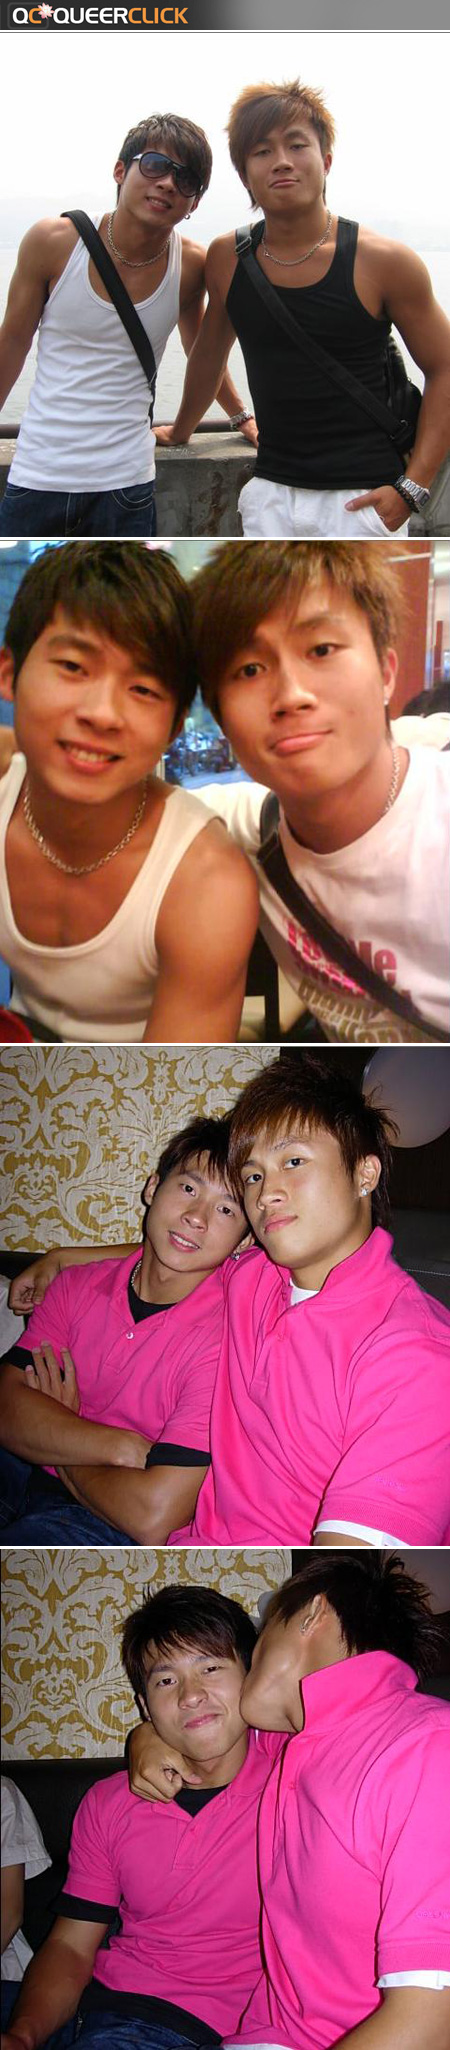 cute asian gay couple 001 Yahoo!.Answers Is 0 positive number.